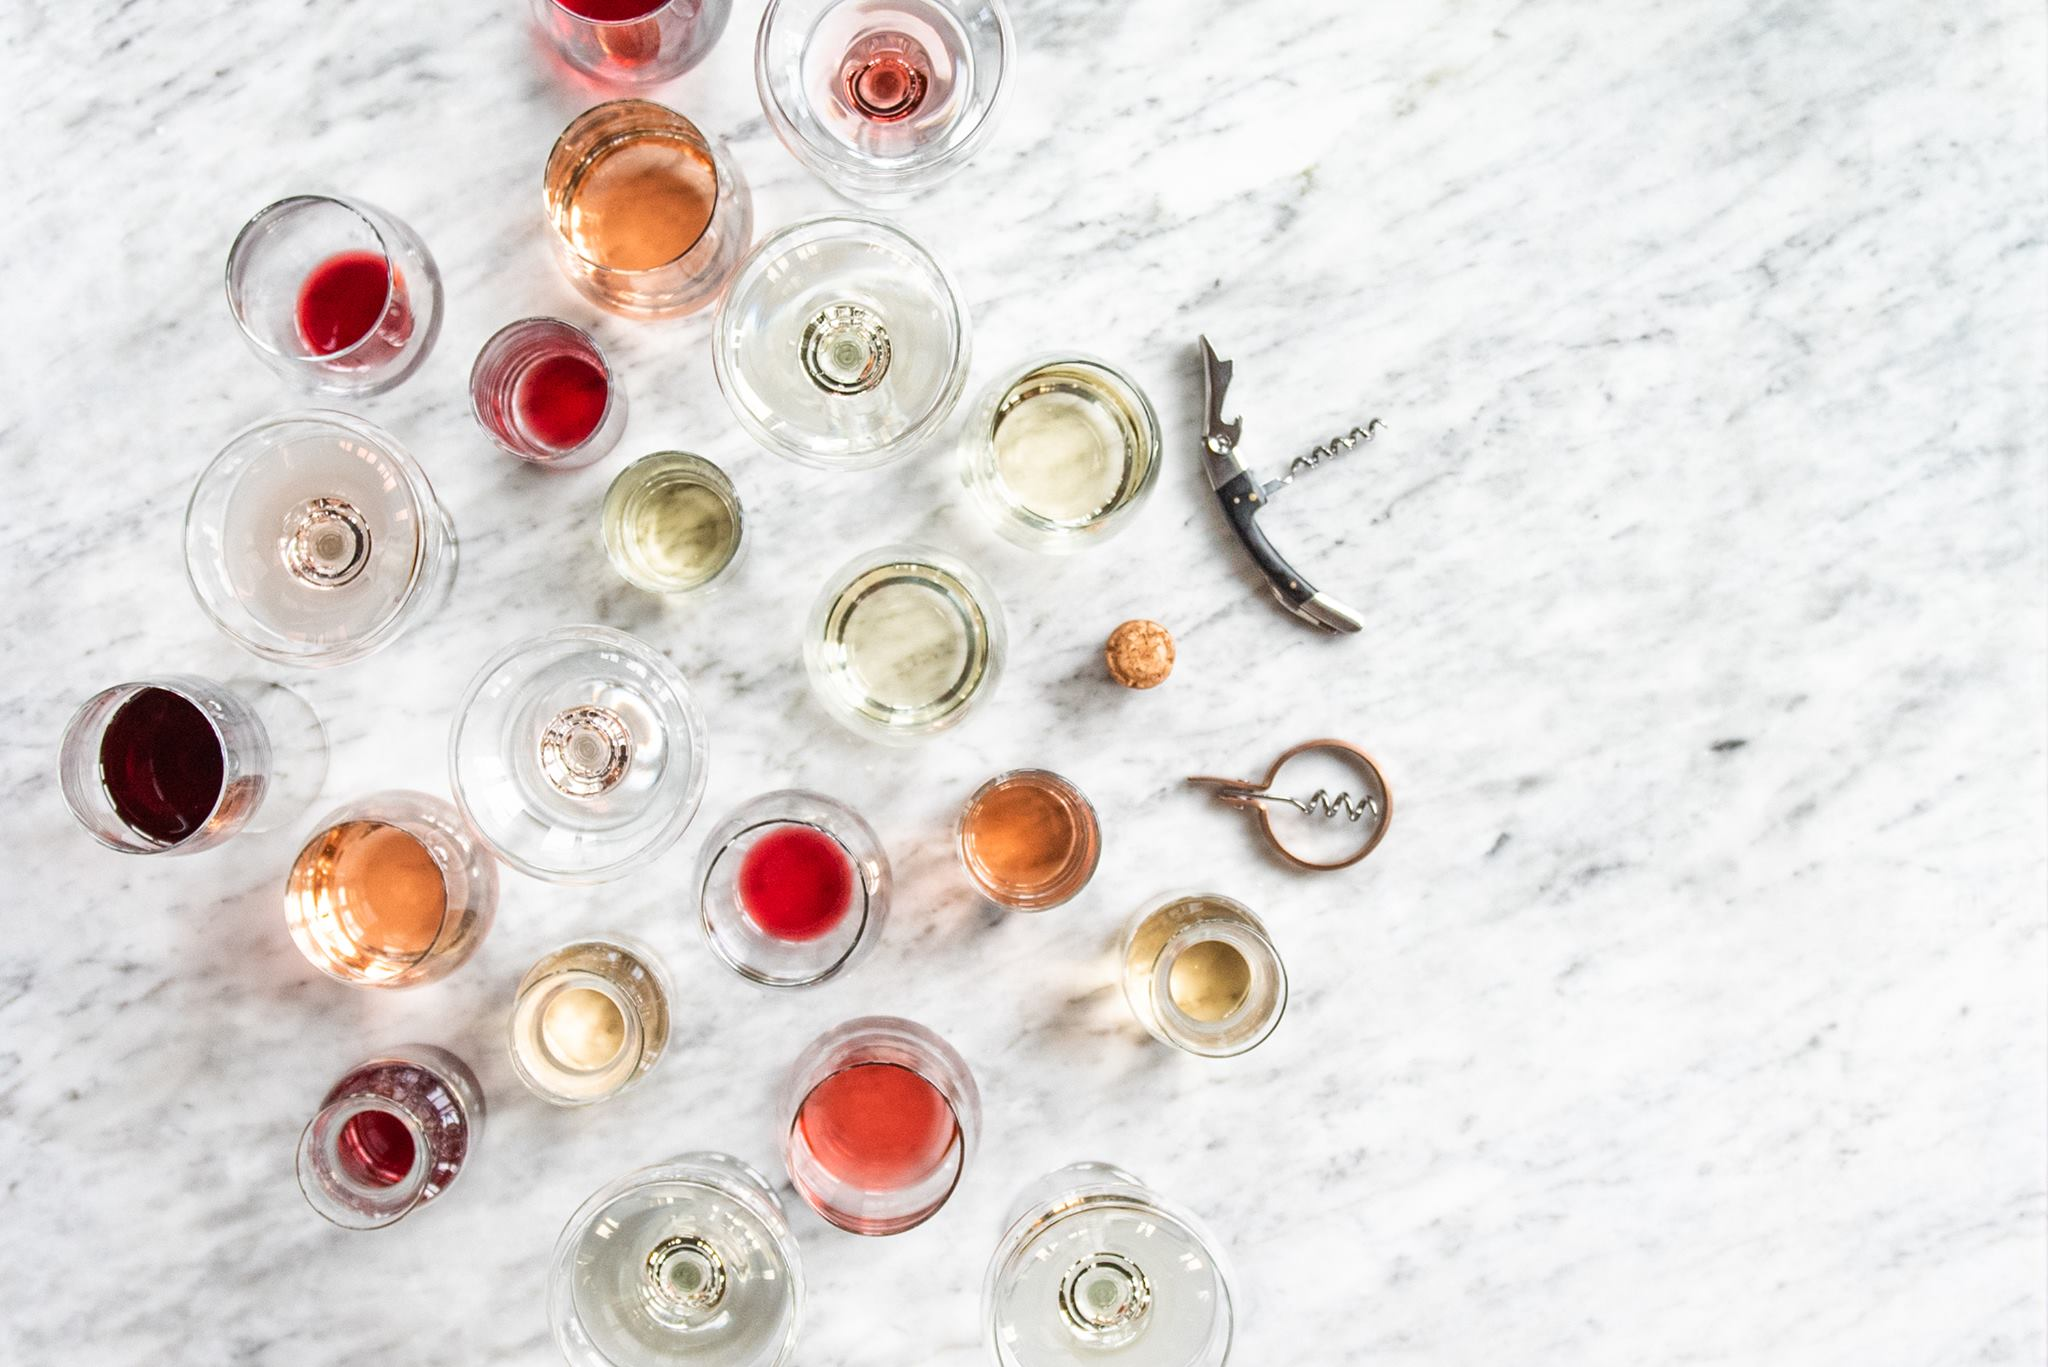 Wednesday just got wonderful! Half price wines on hump day. What's better than that?